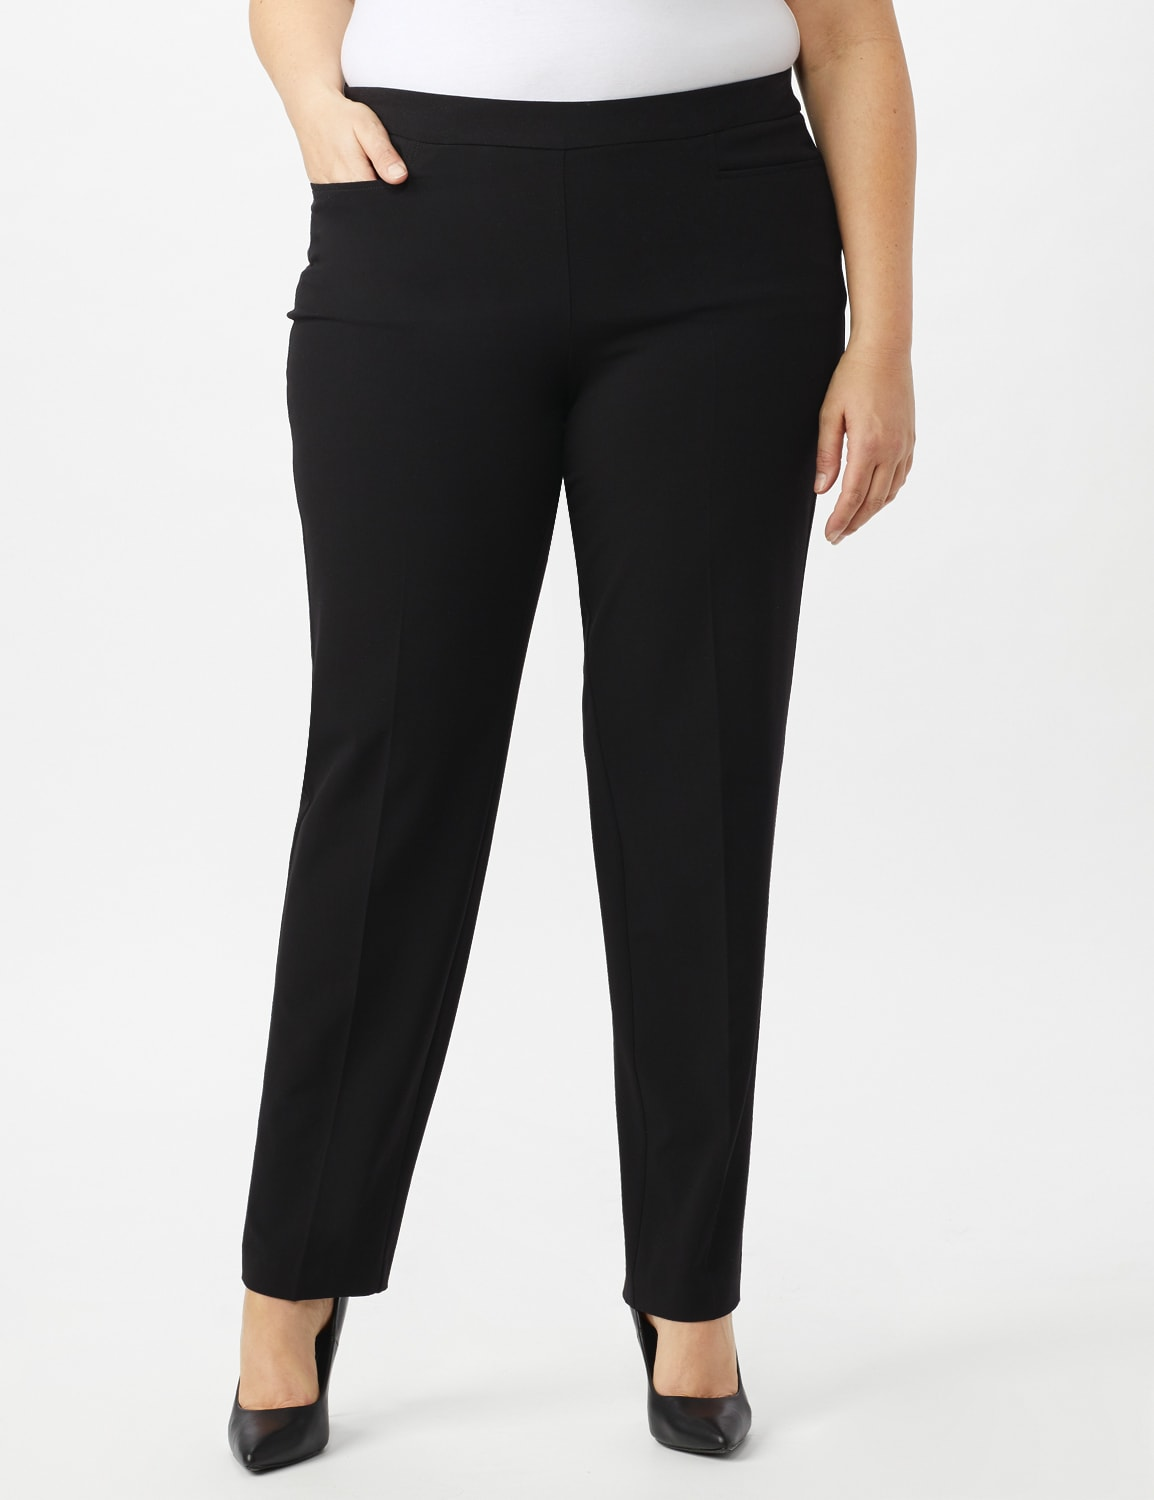 Secret Agent Pull On Tummy Control Pants with Pockets - Short Length - Black - Front